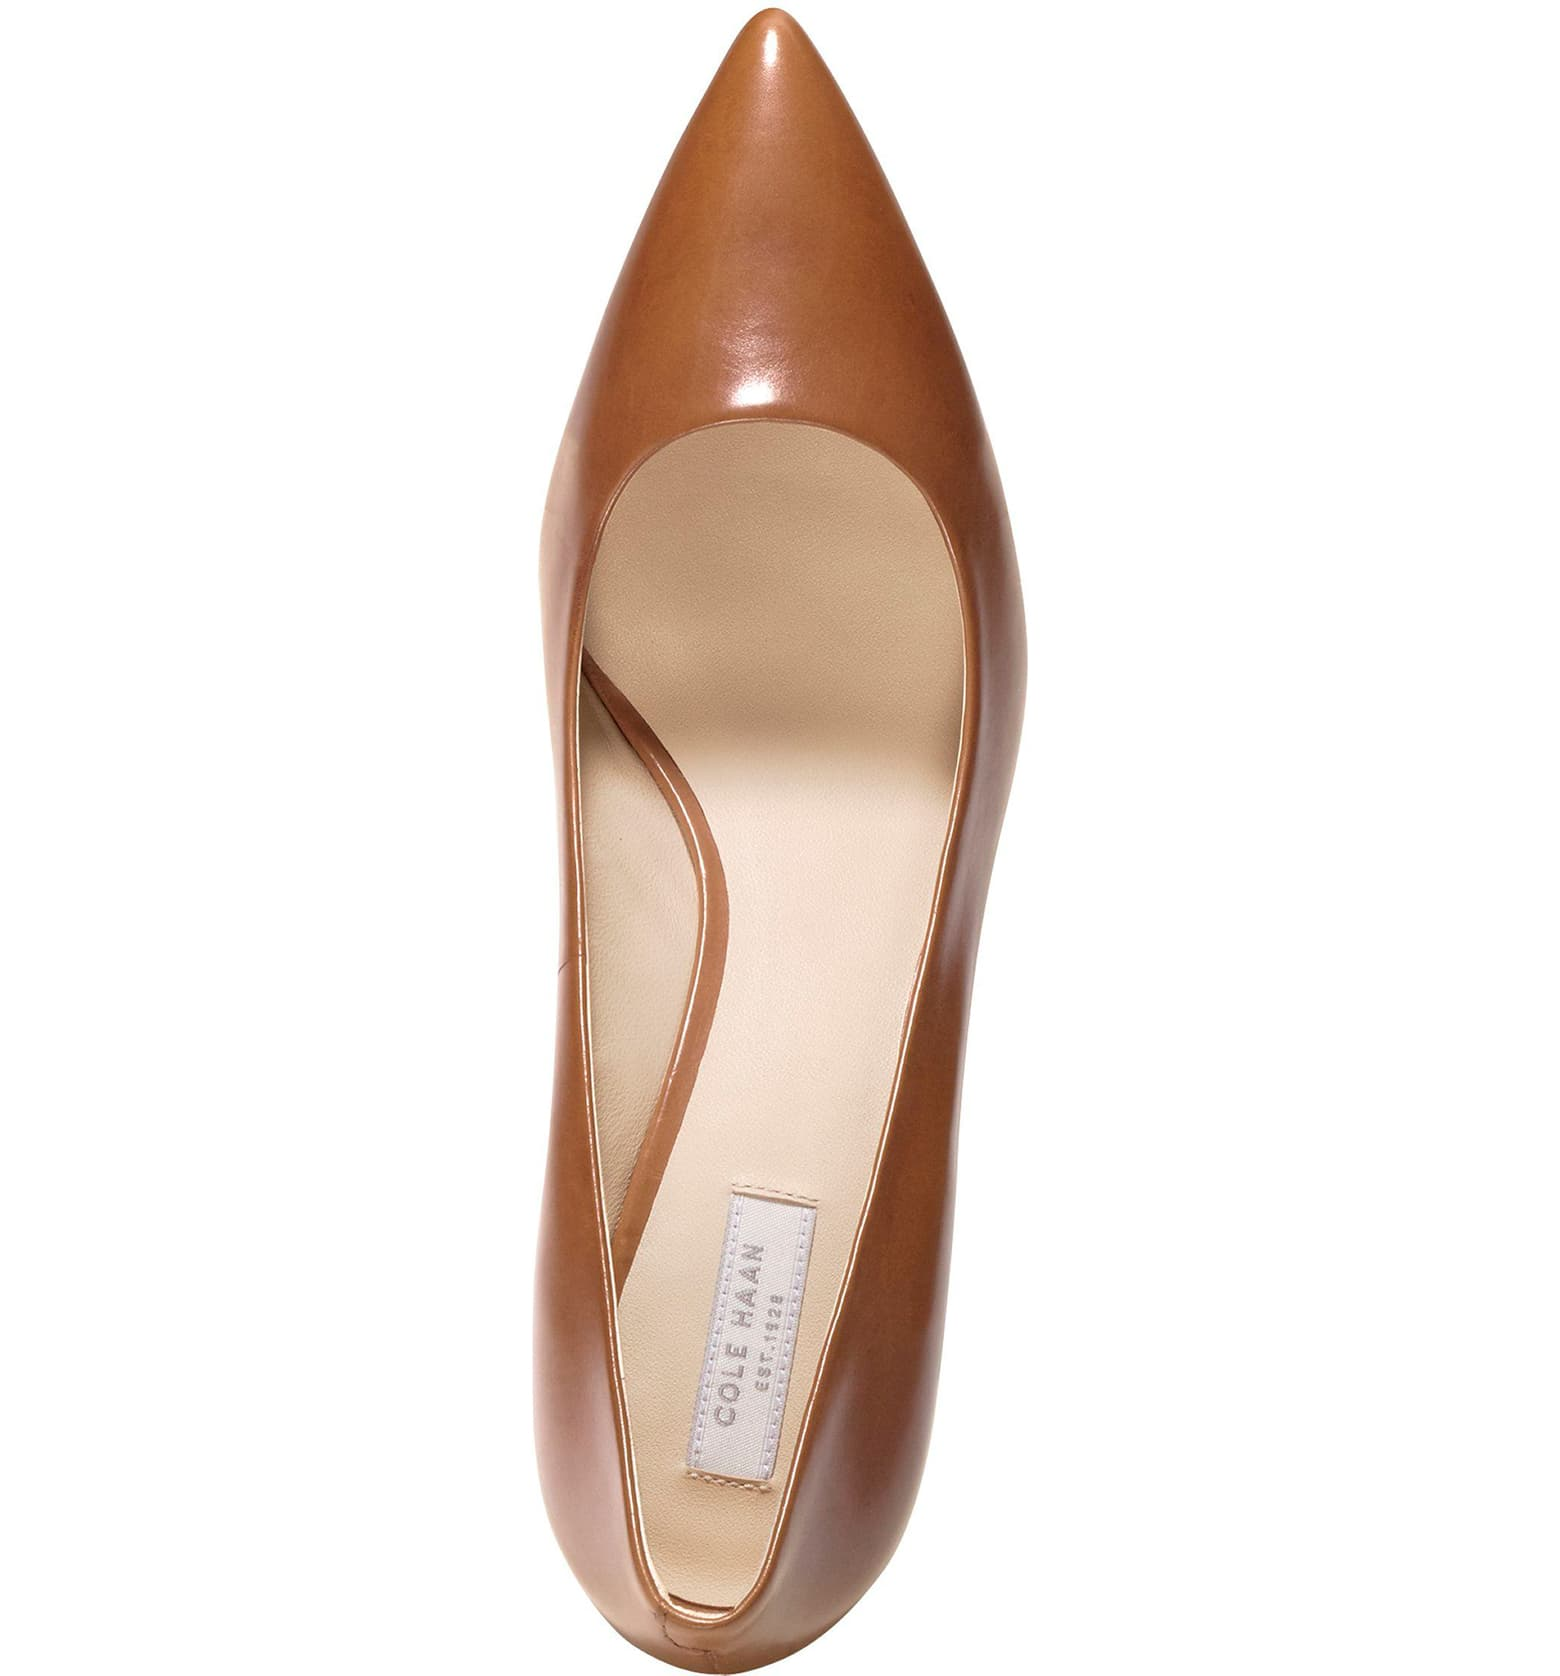 Vesta Kitten Pump